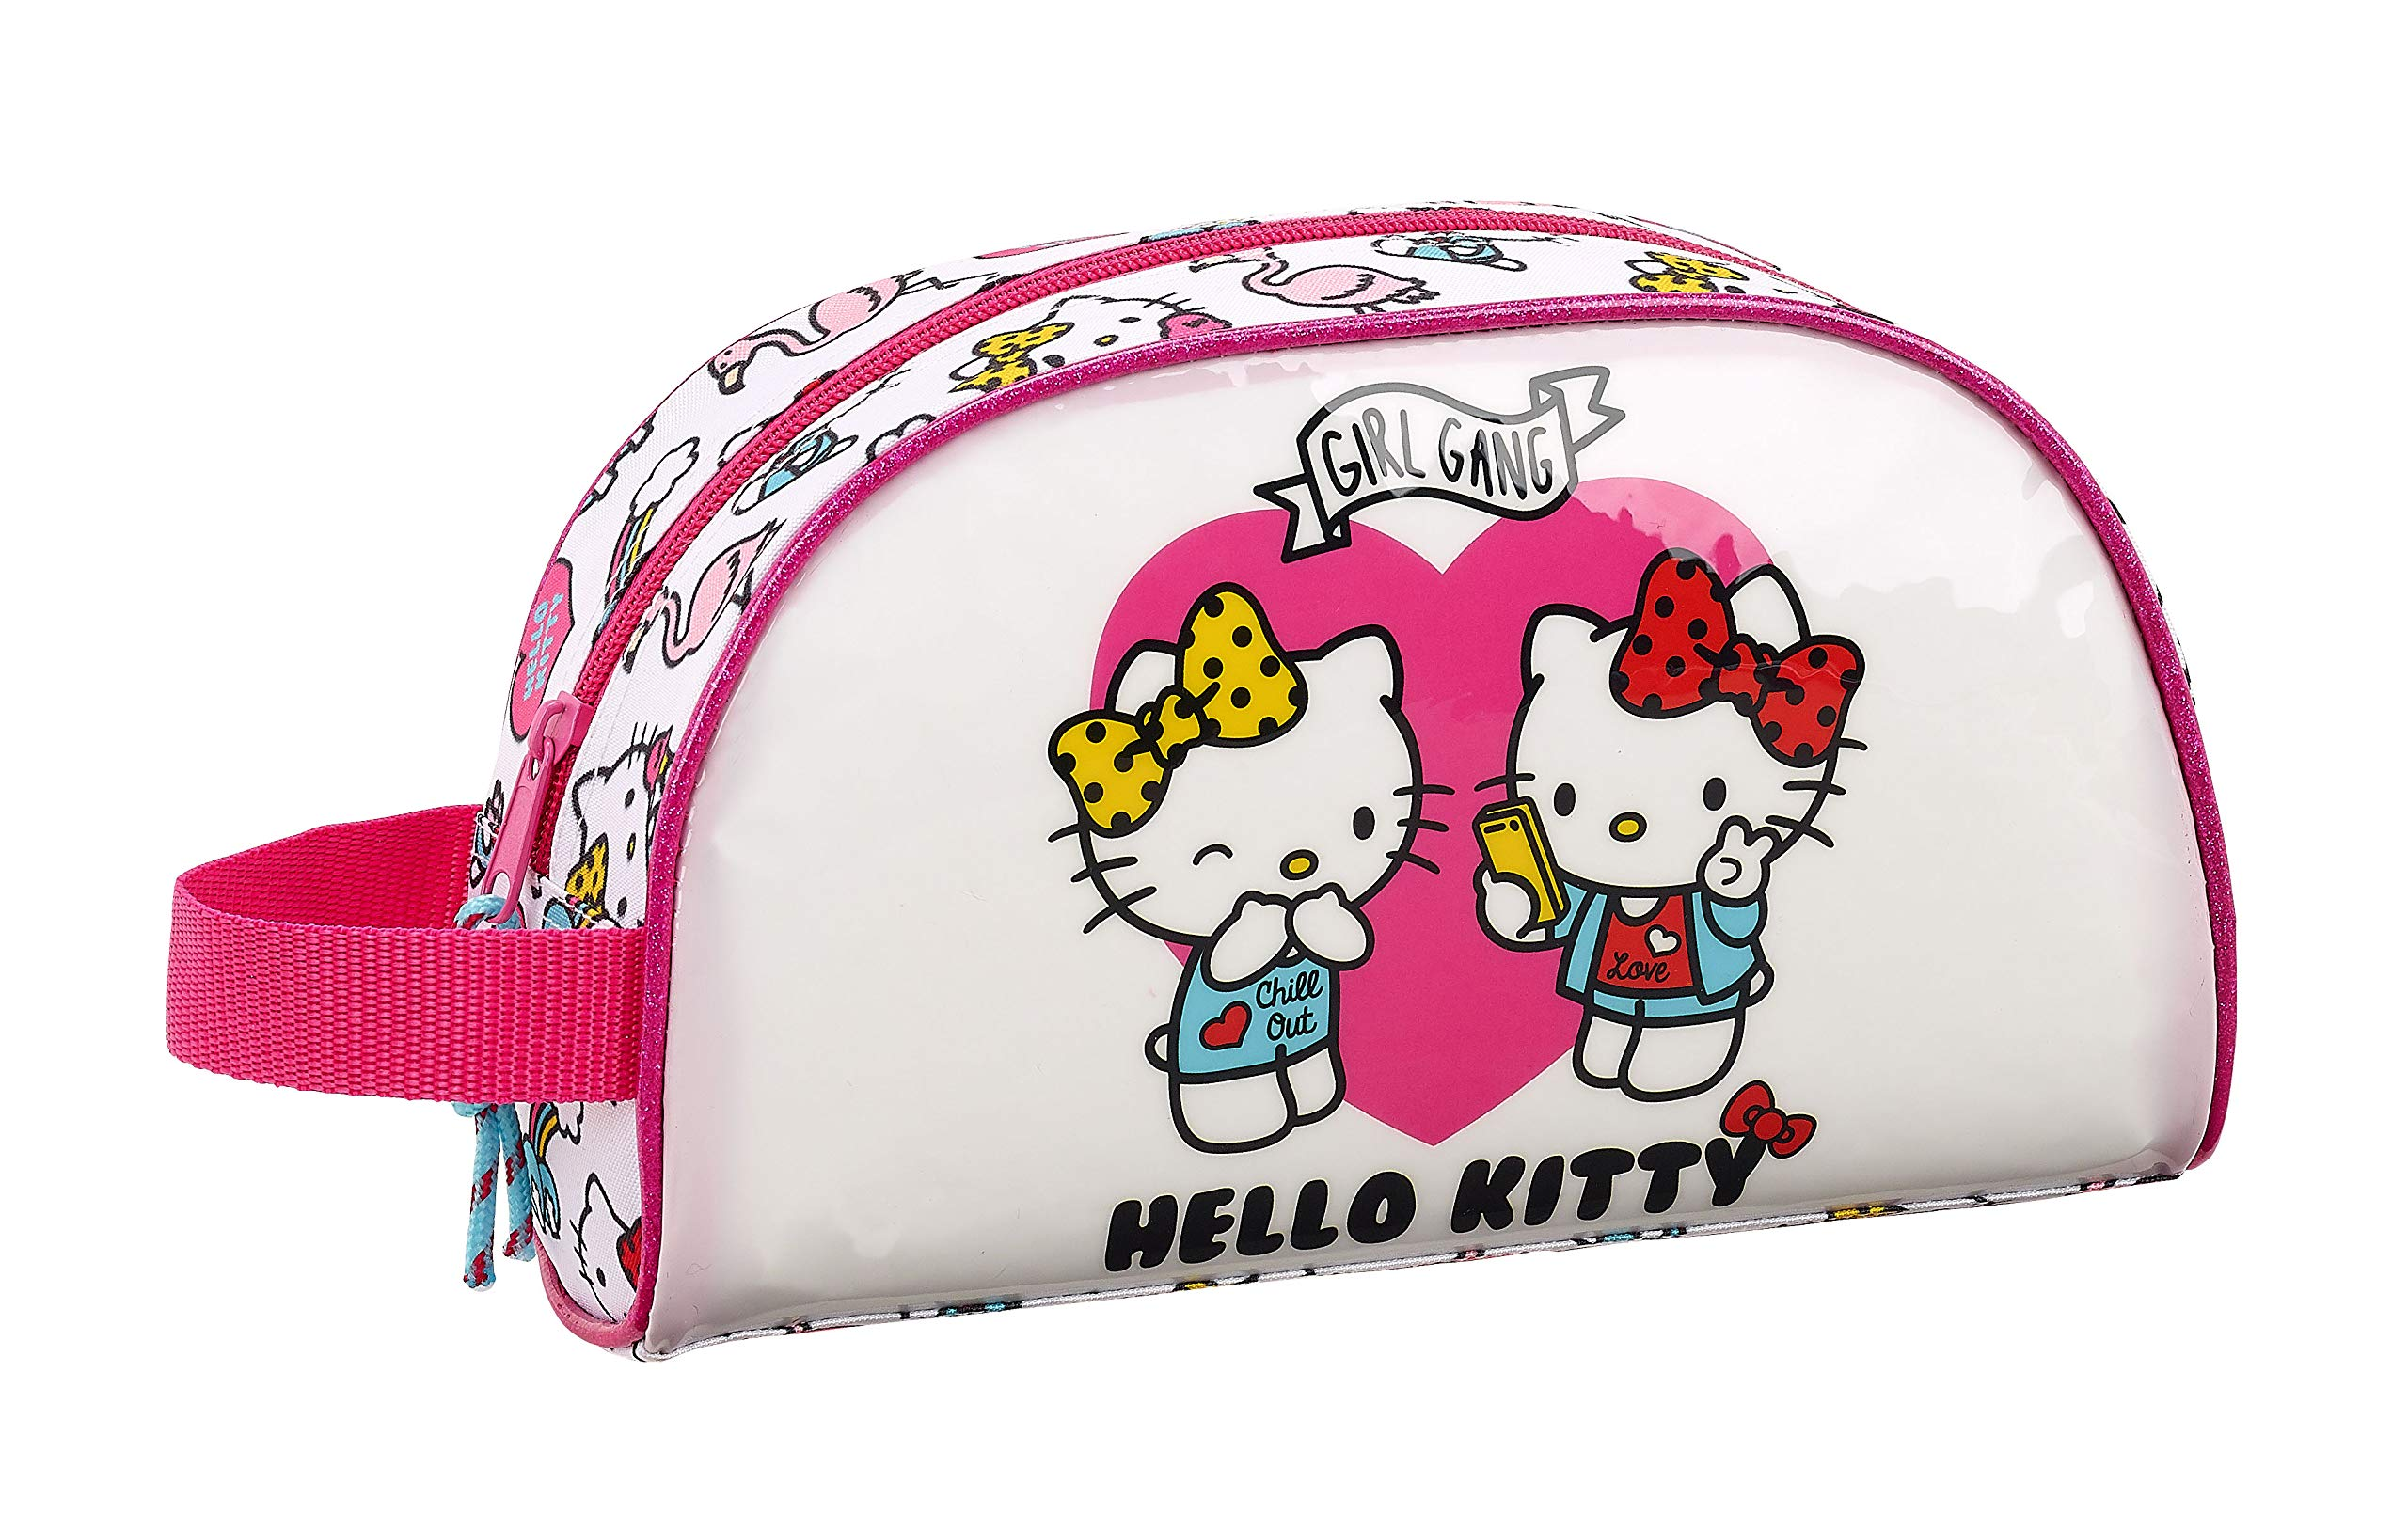 Hello Kitty Neceser, Bolsa de Aseo Adaptable a Carro